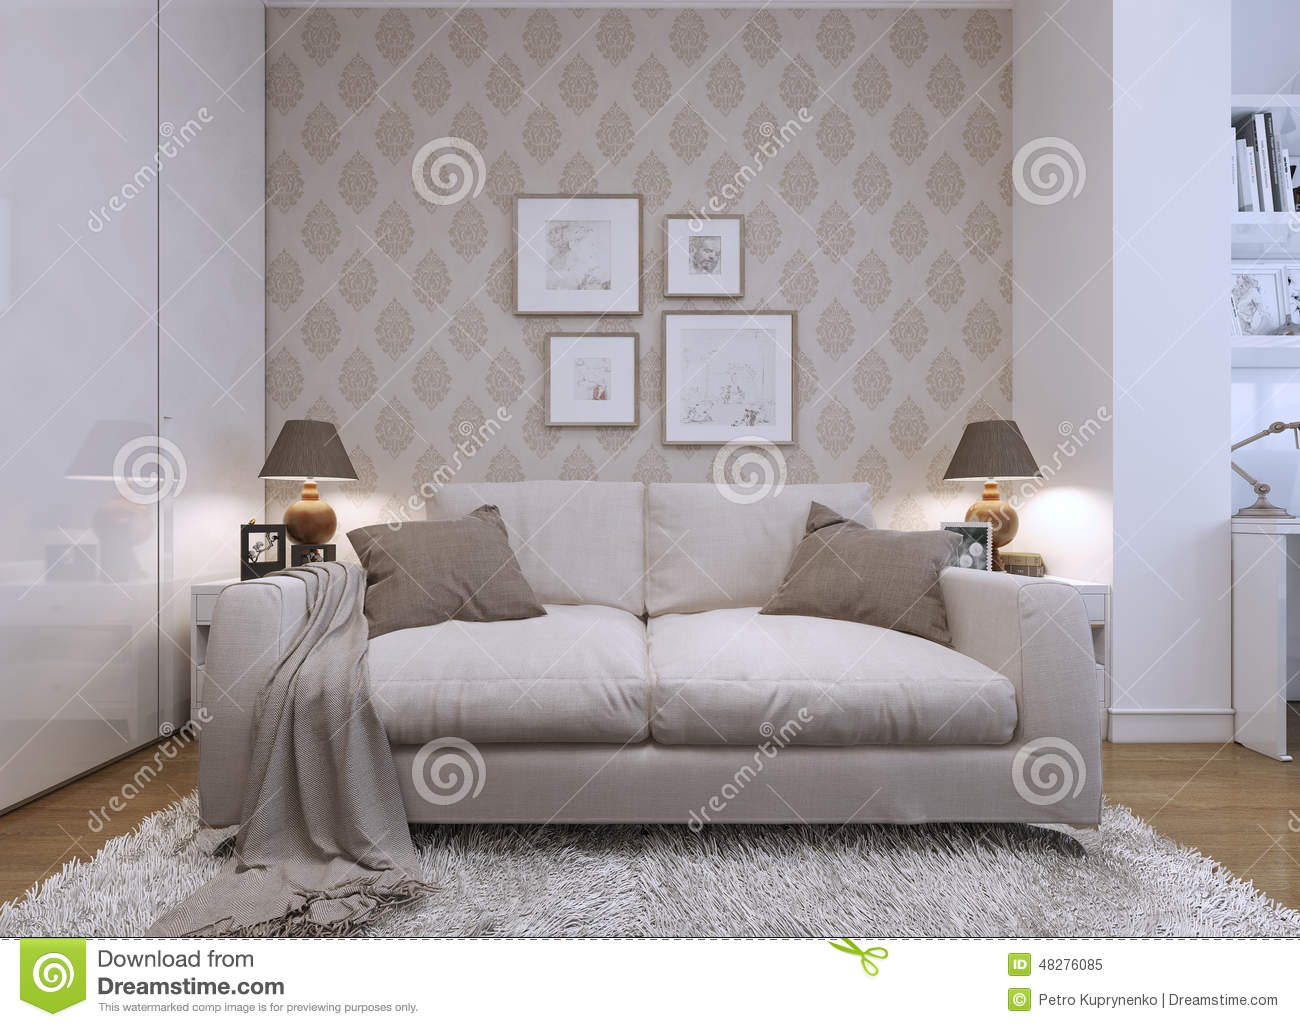 style moderne de chambre d 39 amis illustration stock image 48276085. Black Bedroom Furniture Sets. Home Design Ideas